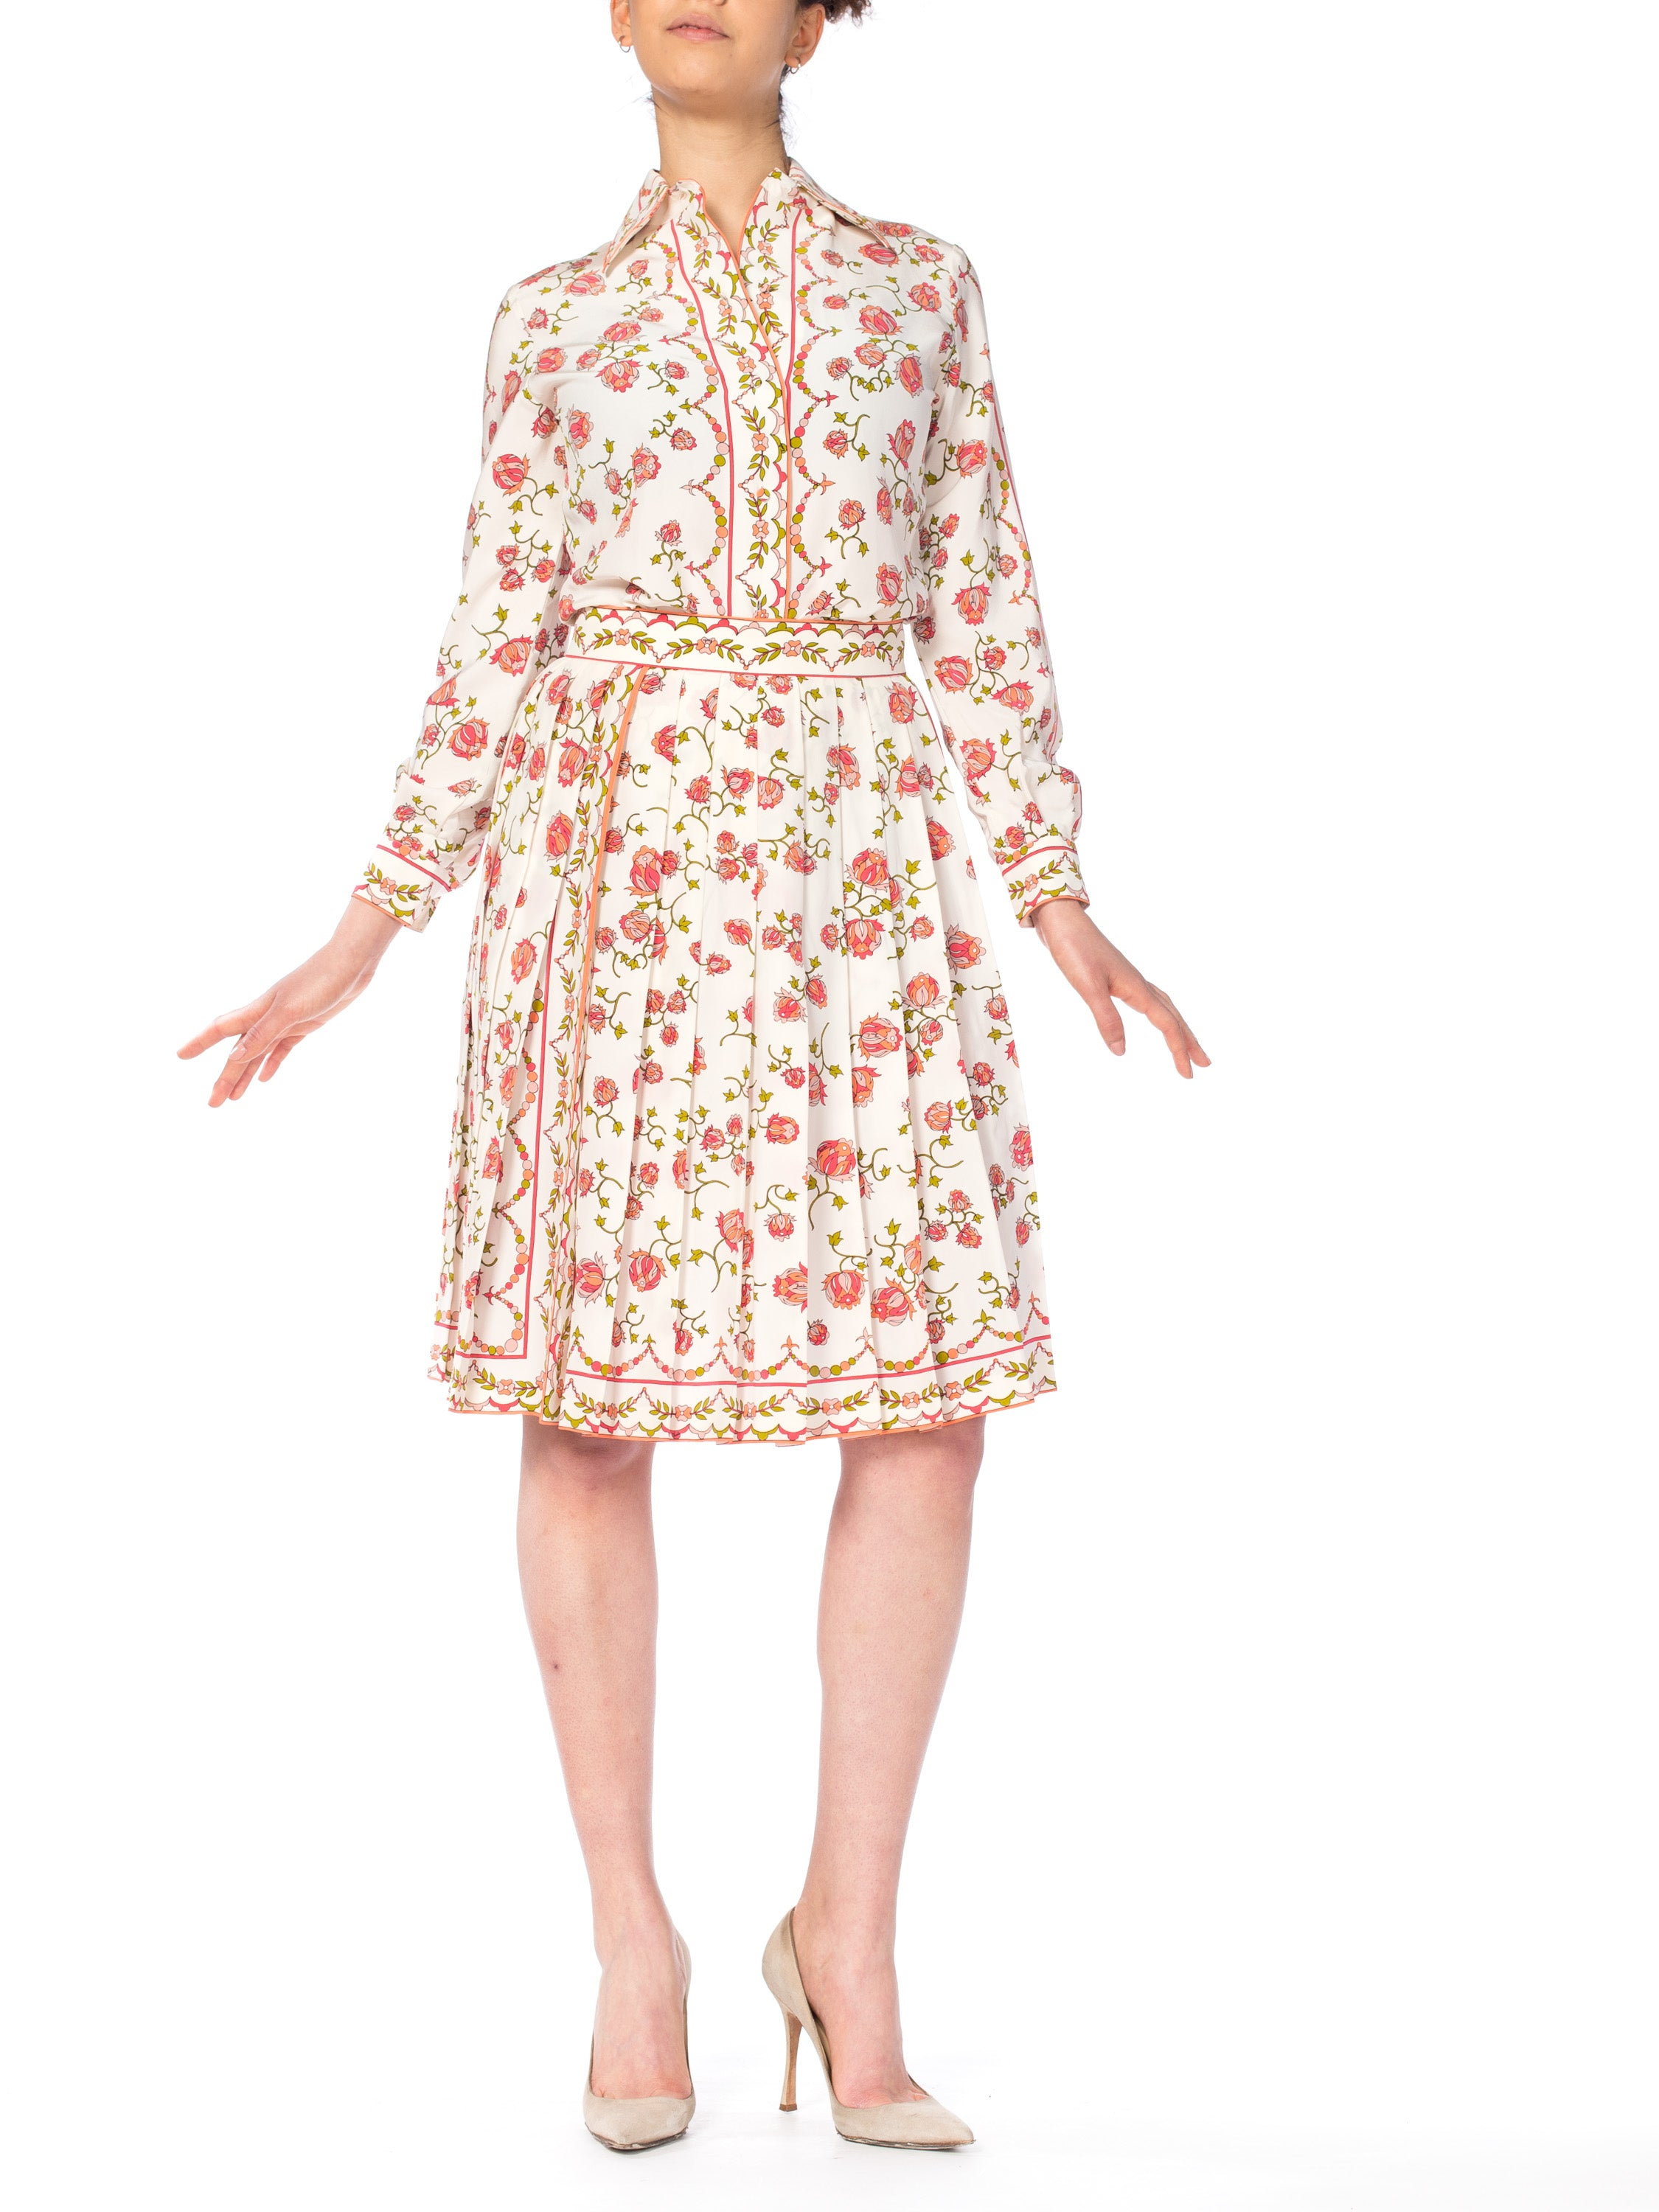 Emilio Pucci Silk Floral Two Piece Skirt Set